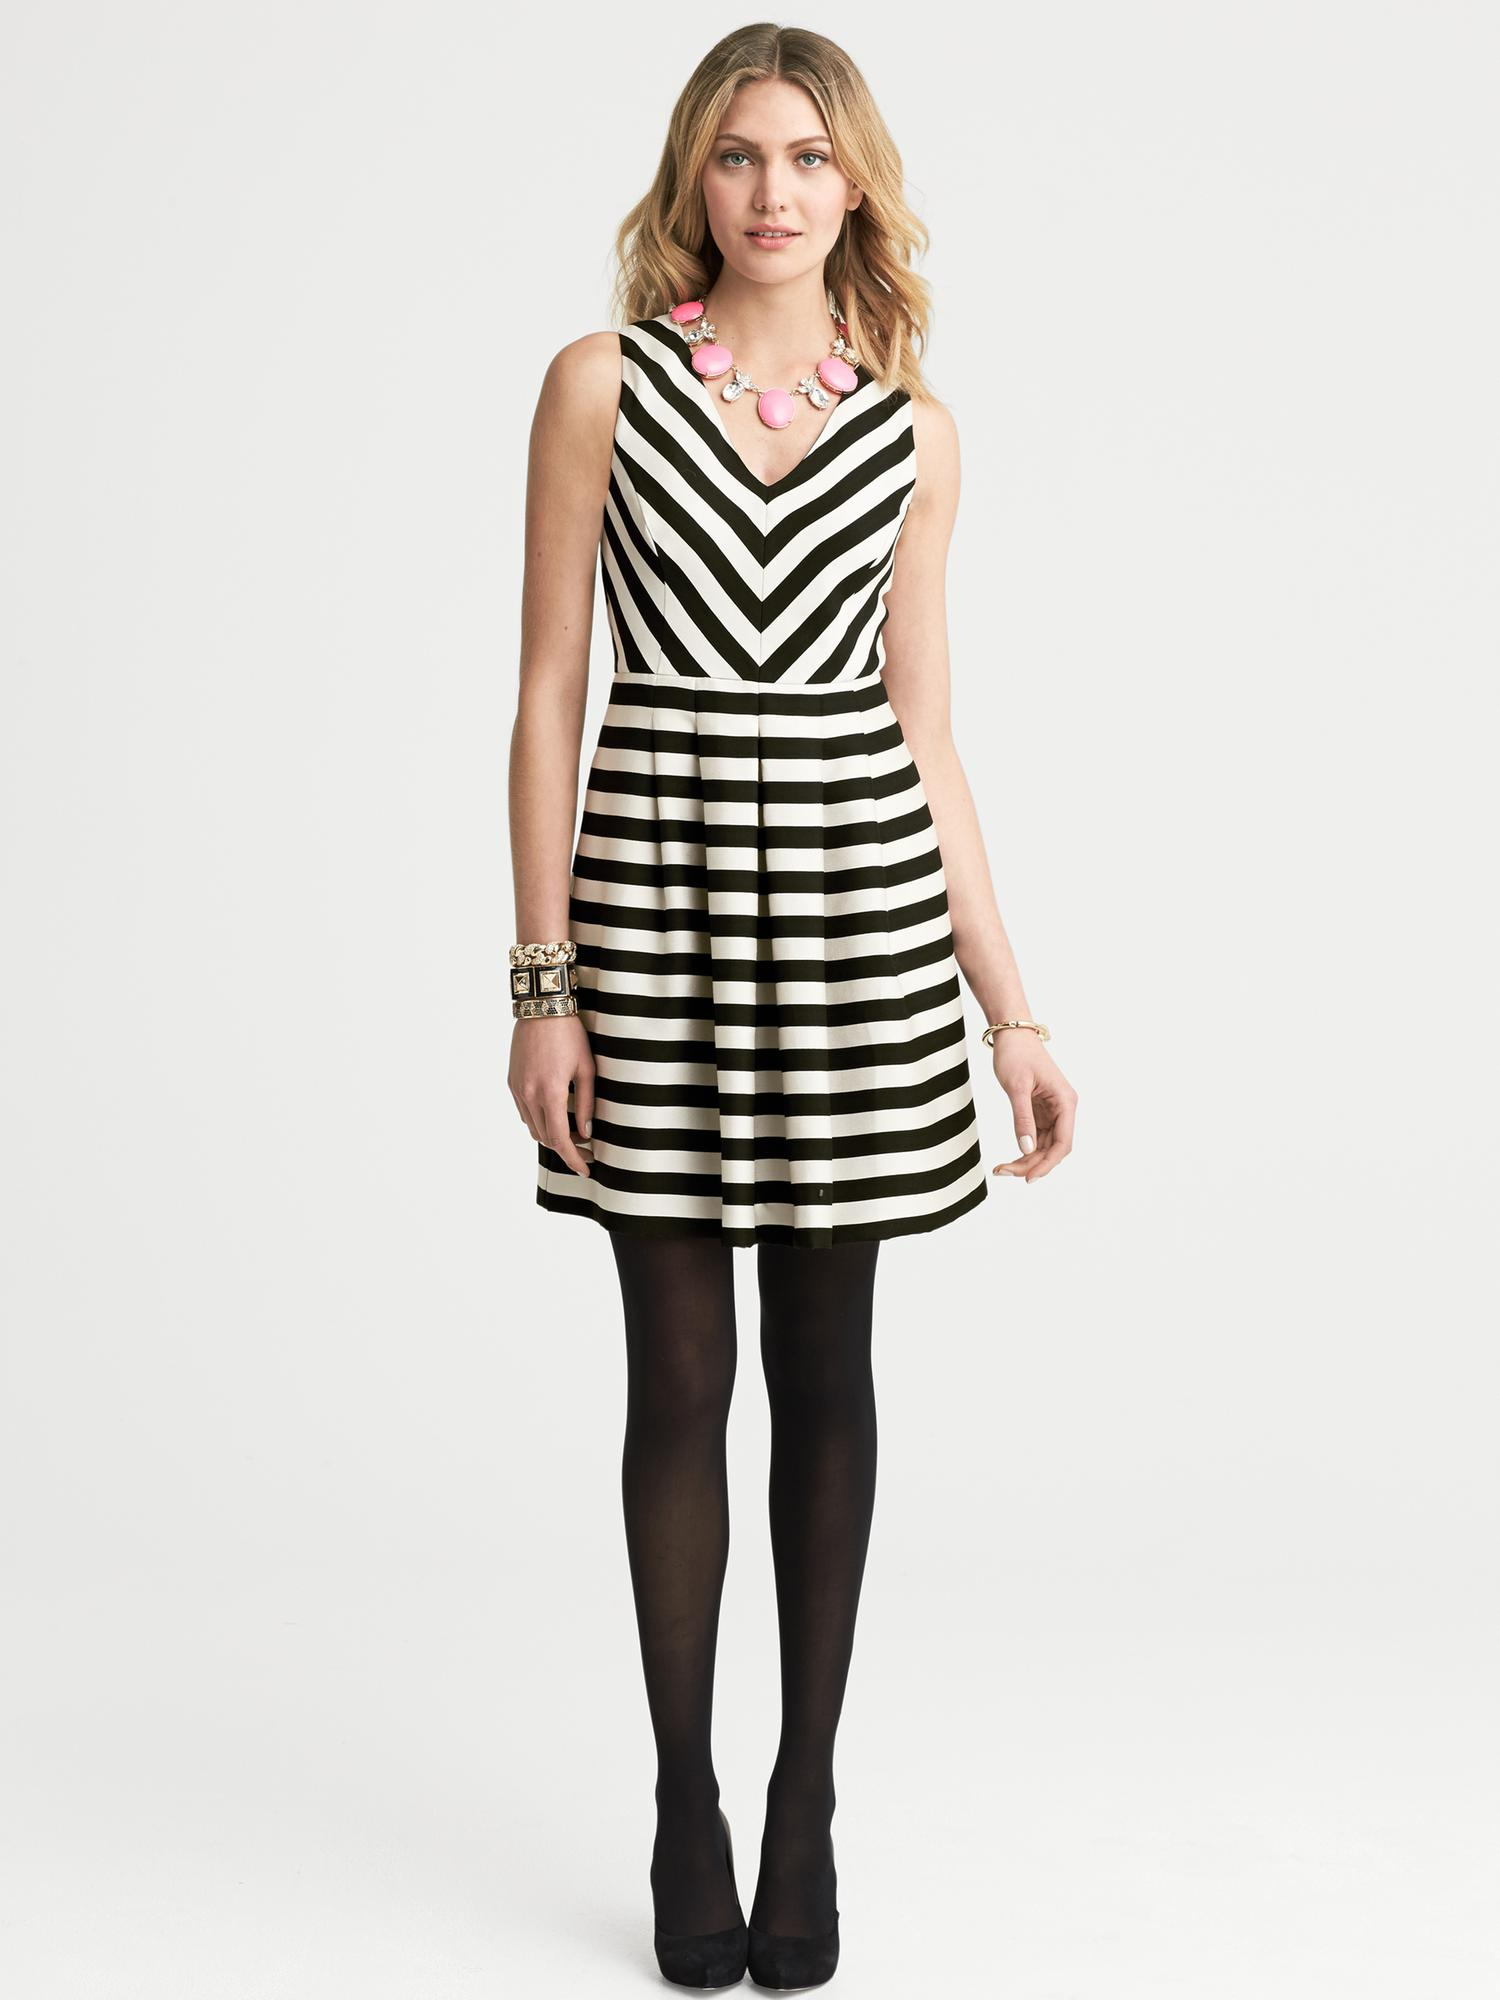 Black And White Striped Dresses | Www.imgkid.com - The Image Kid Has It!